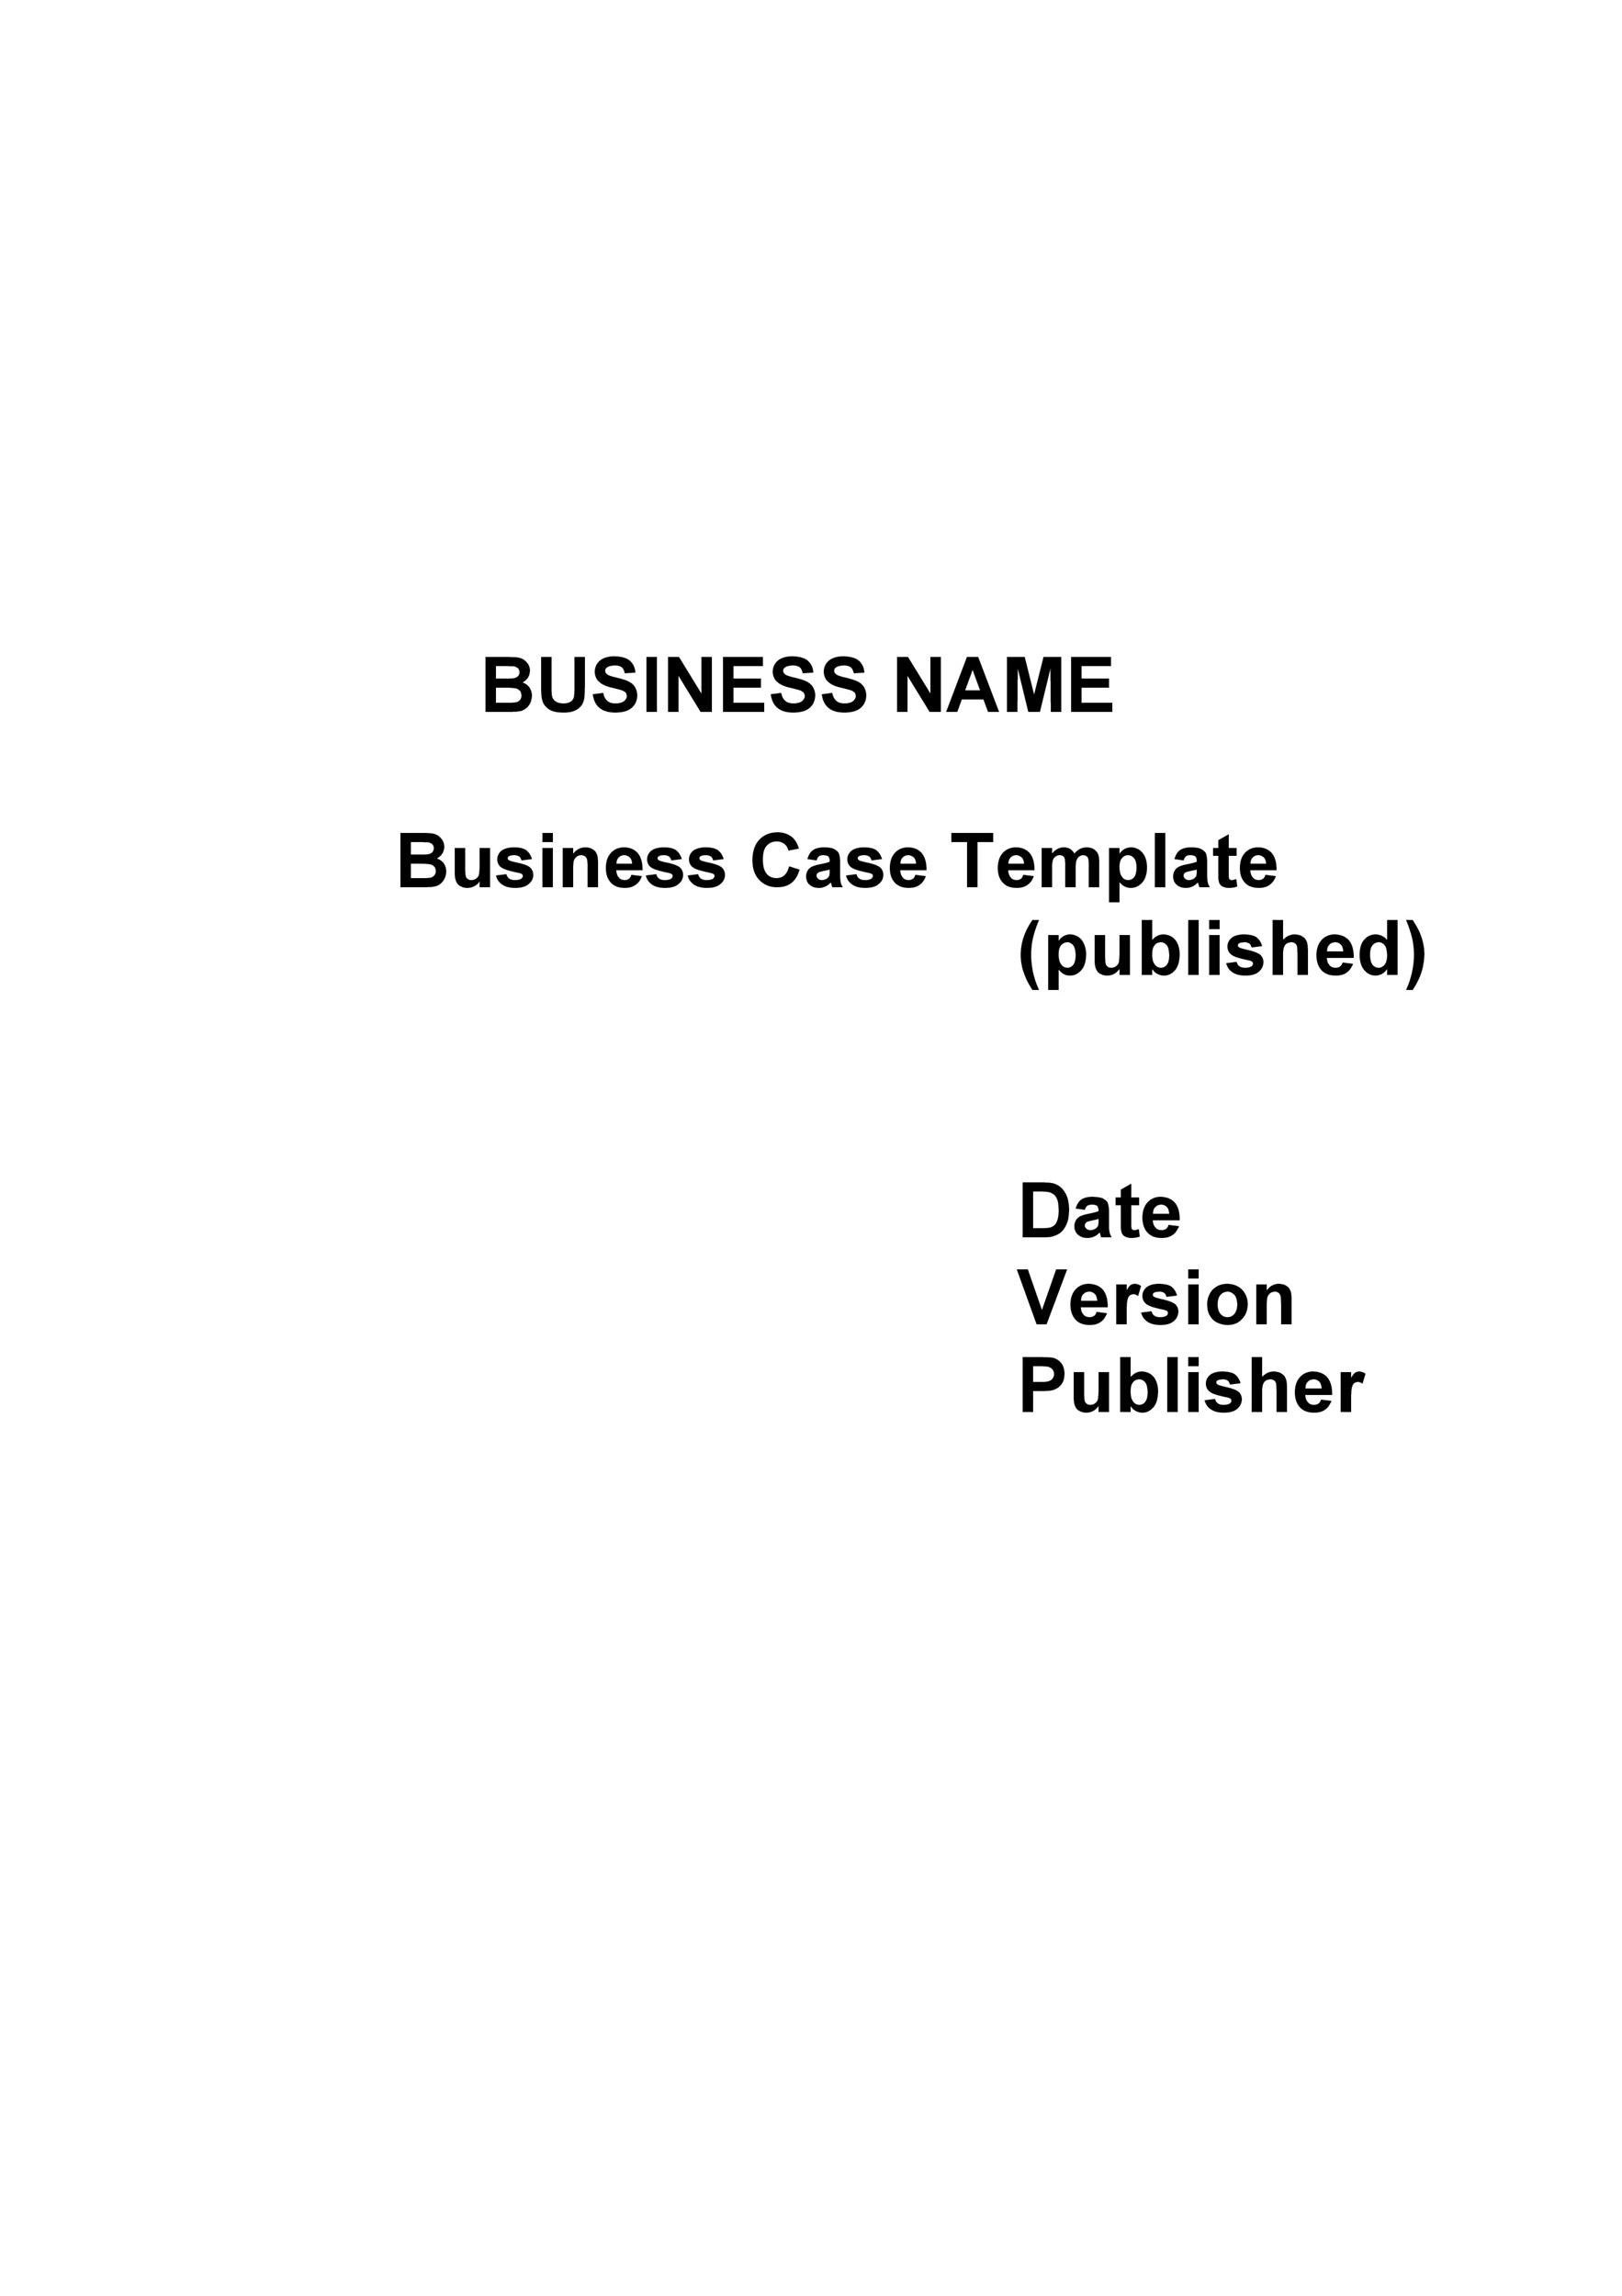 Free Business Case Template 21